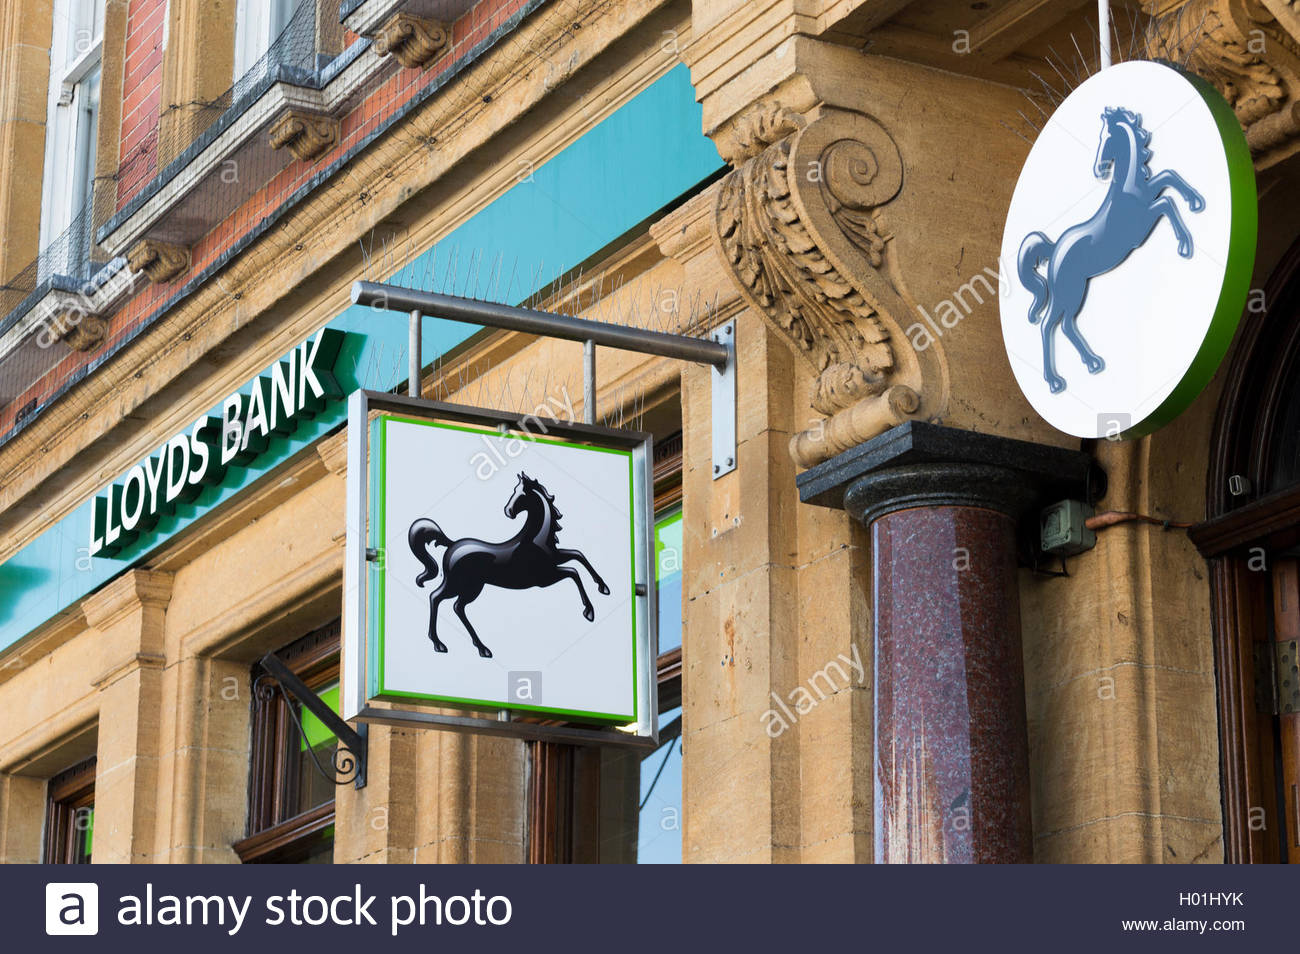 Close-up of the spelt and logo signs above a branch of Lloyds Bank in Honiton, North Devon, England Stock Photo